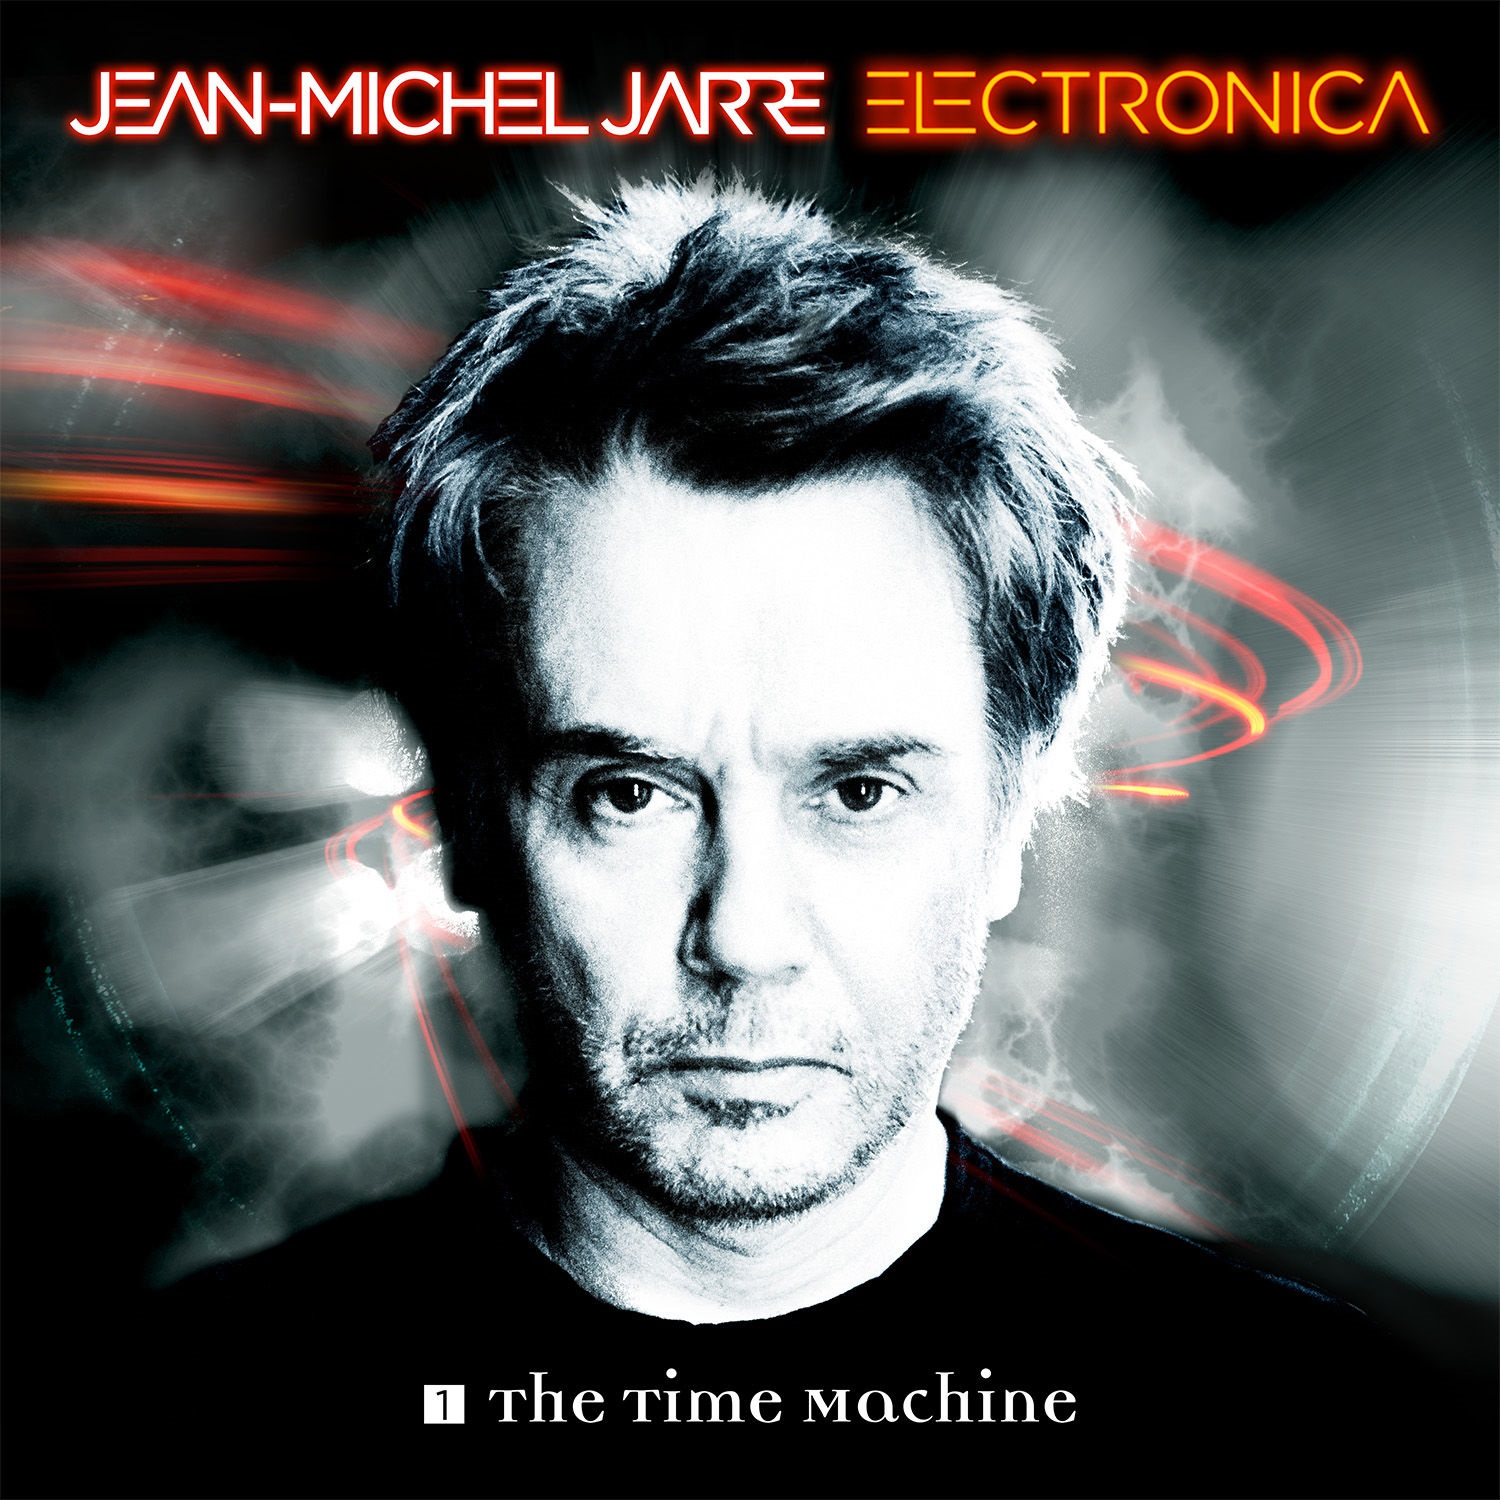 Jean Michel Jarre: Electronica 1 – The Time Machine (CD) пояс для похудения hot shapers neotex размер xl